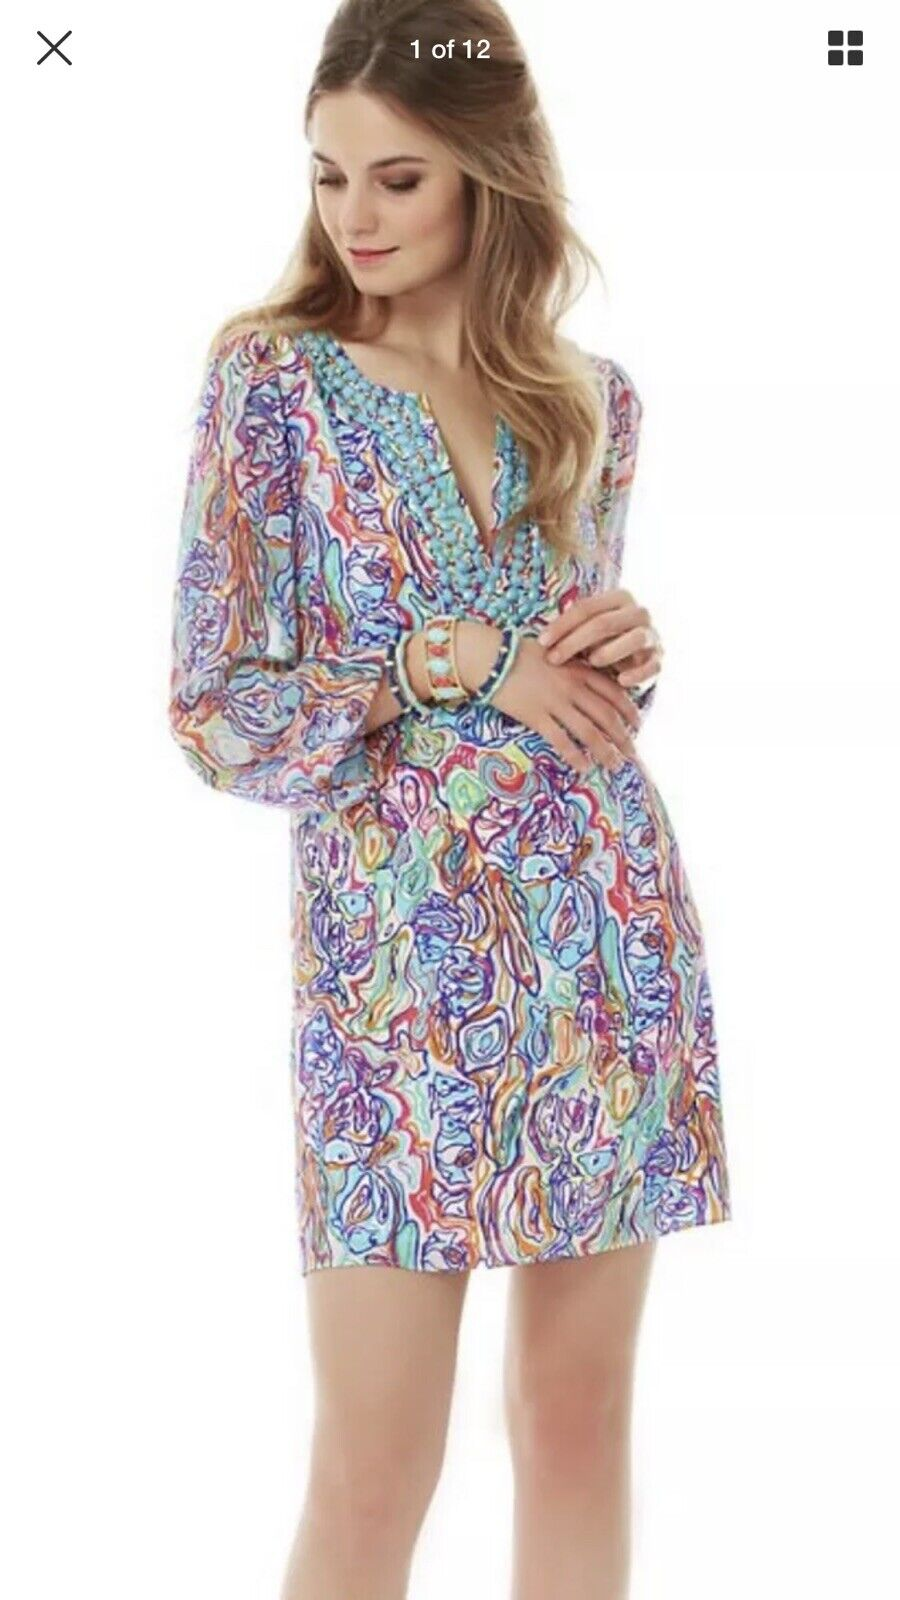 1. Lilly PULITZER SAEMUS Silk BEADED Dress WHAT A CATCH CATCH CATCH Print FISHES Size 6 New 76b533